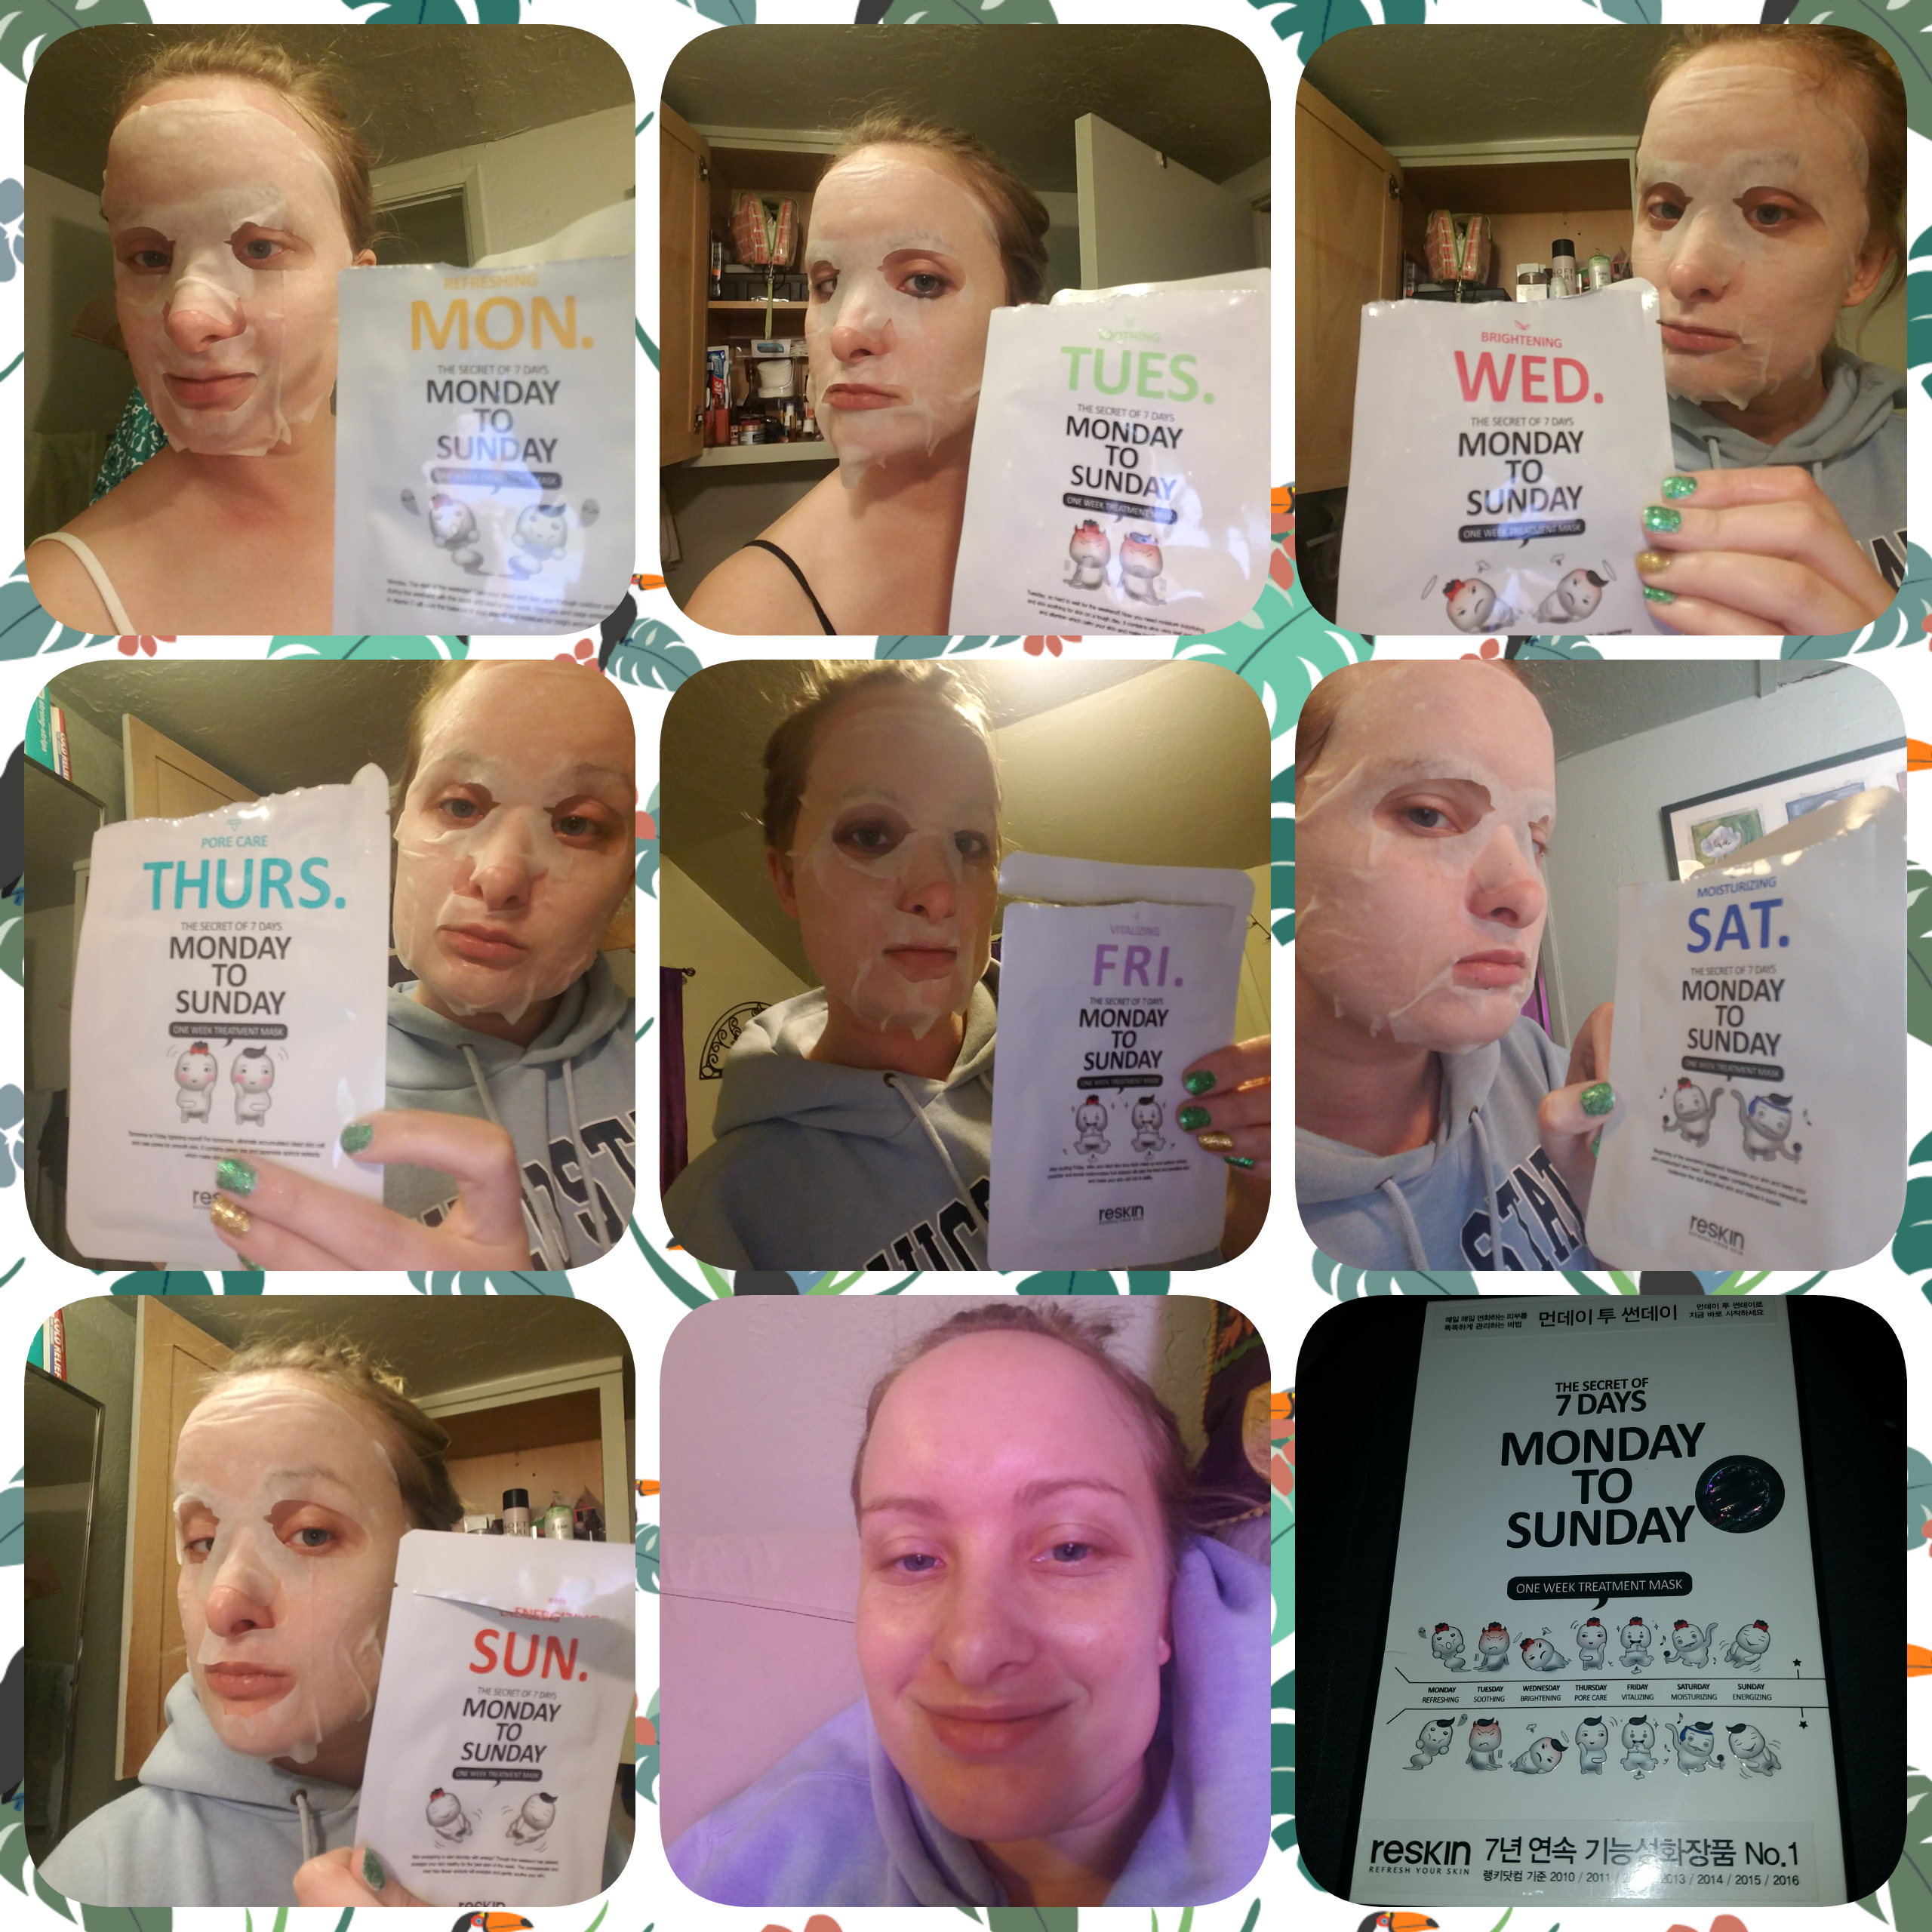 @rachp2003's cover photo for 'Reskin The Secret of 7 Days Monday to Sunday One Week Treatment Mask Review'